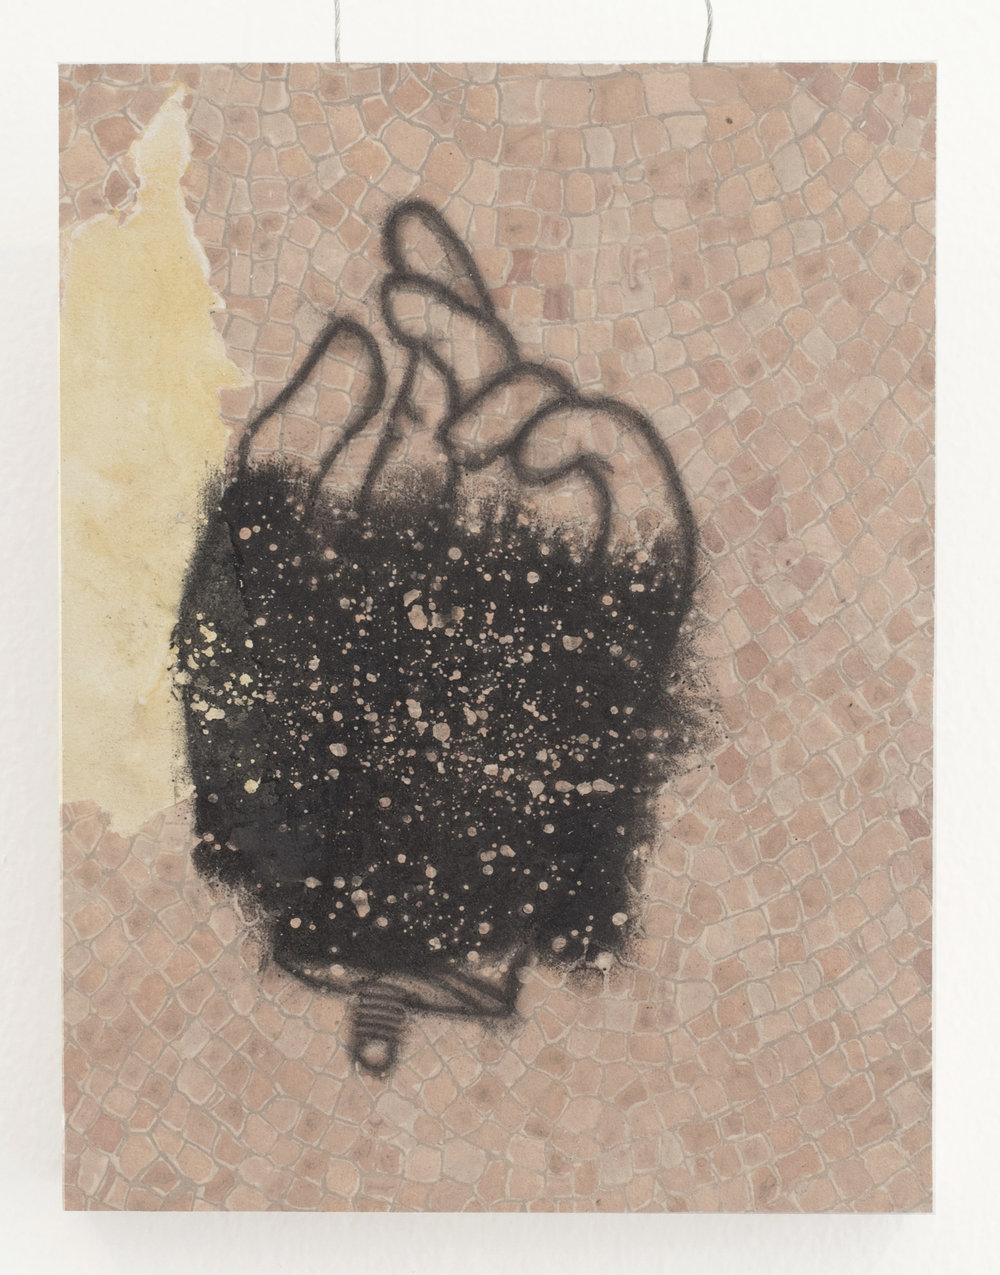 Hand reliquary | graphite and acrylic on panel | 7INx9IN